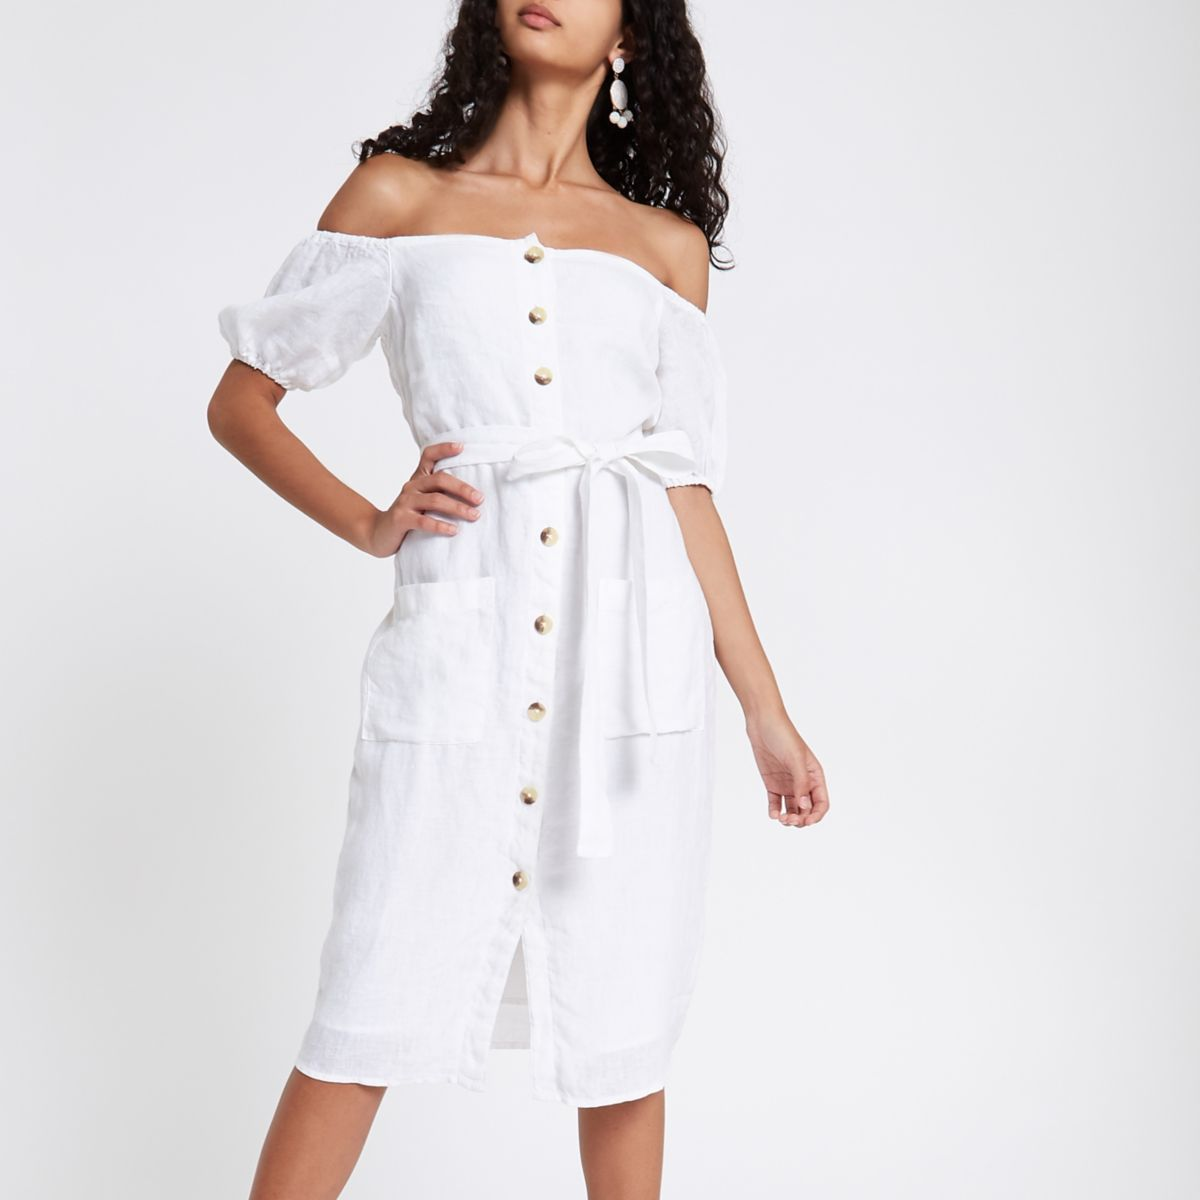 https://www.riverisland.ie/p/white-button-up-bardot-dress-716689